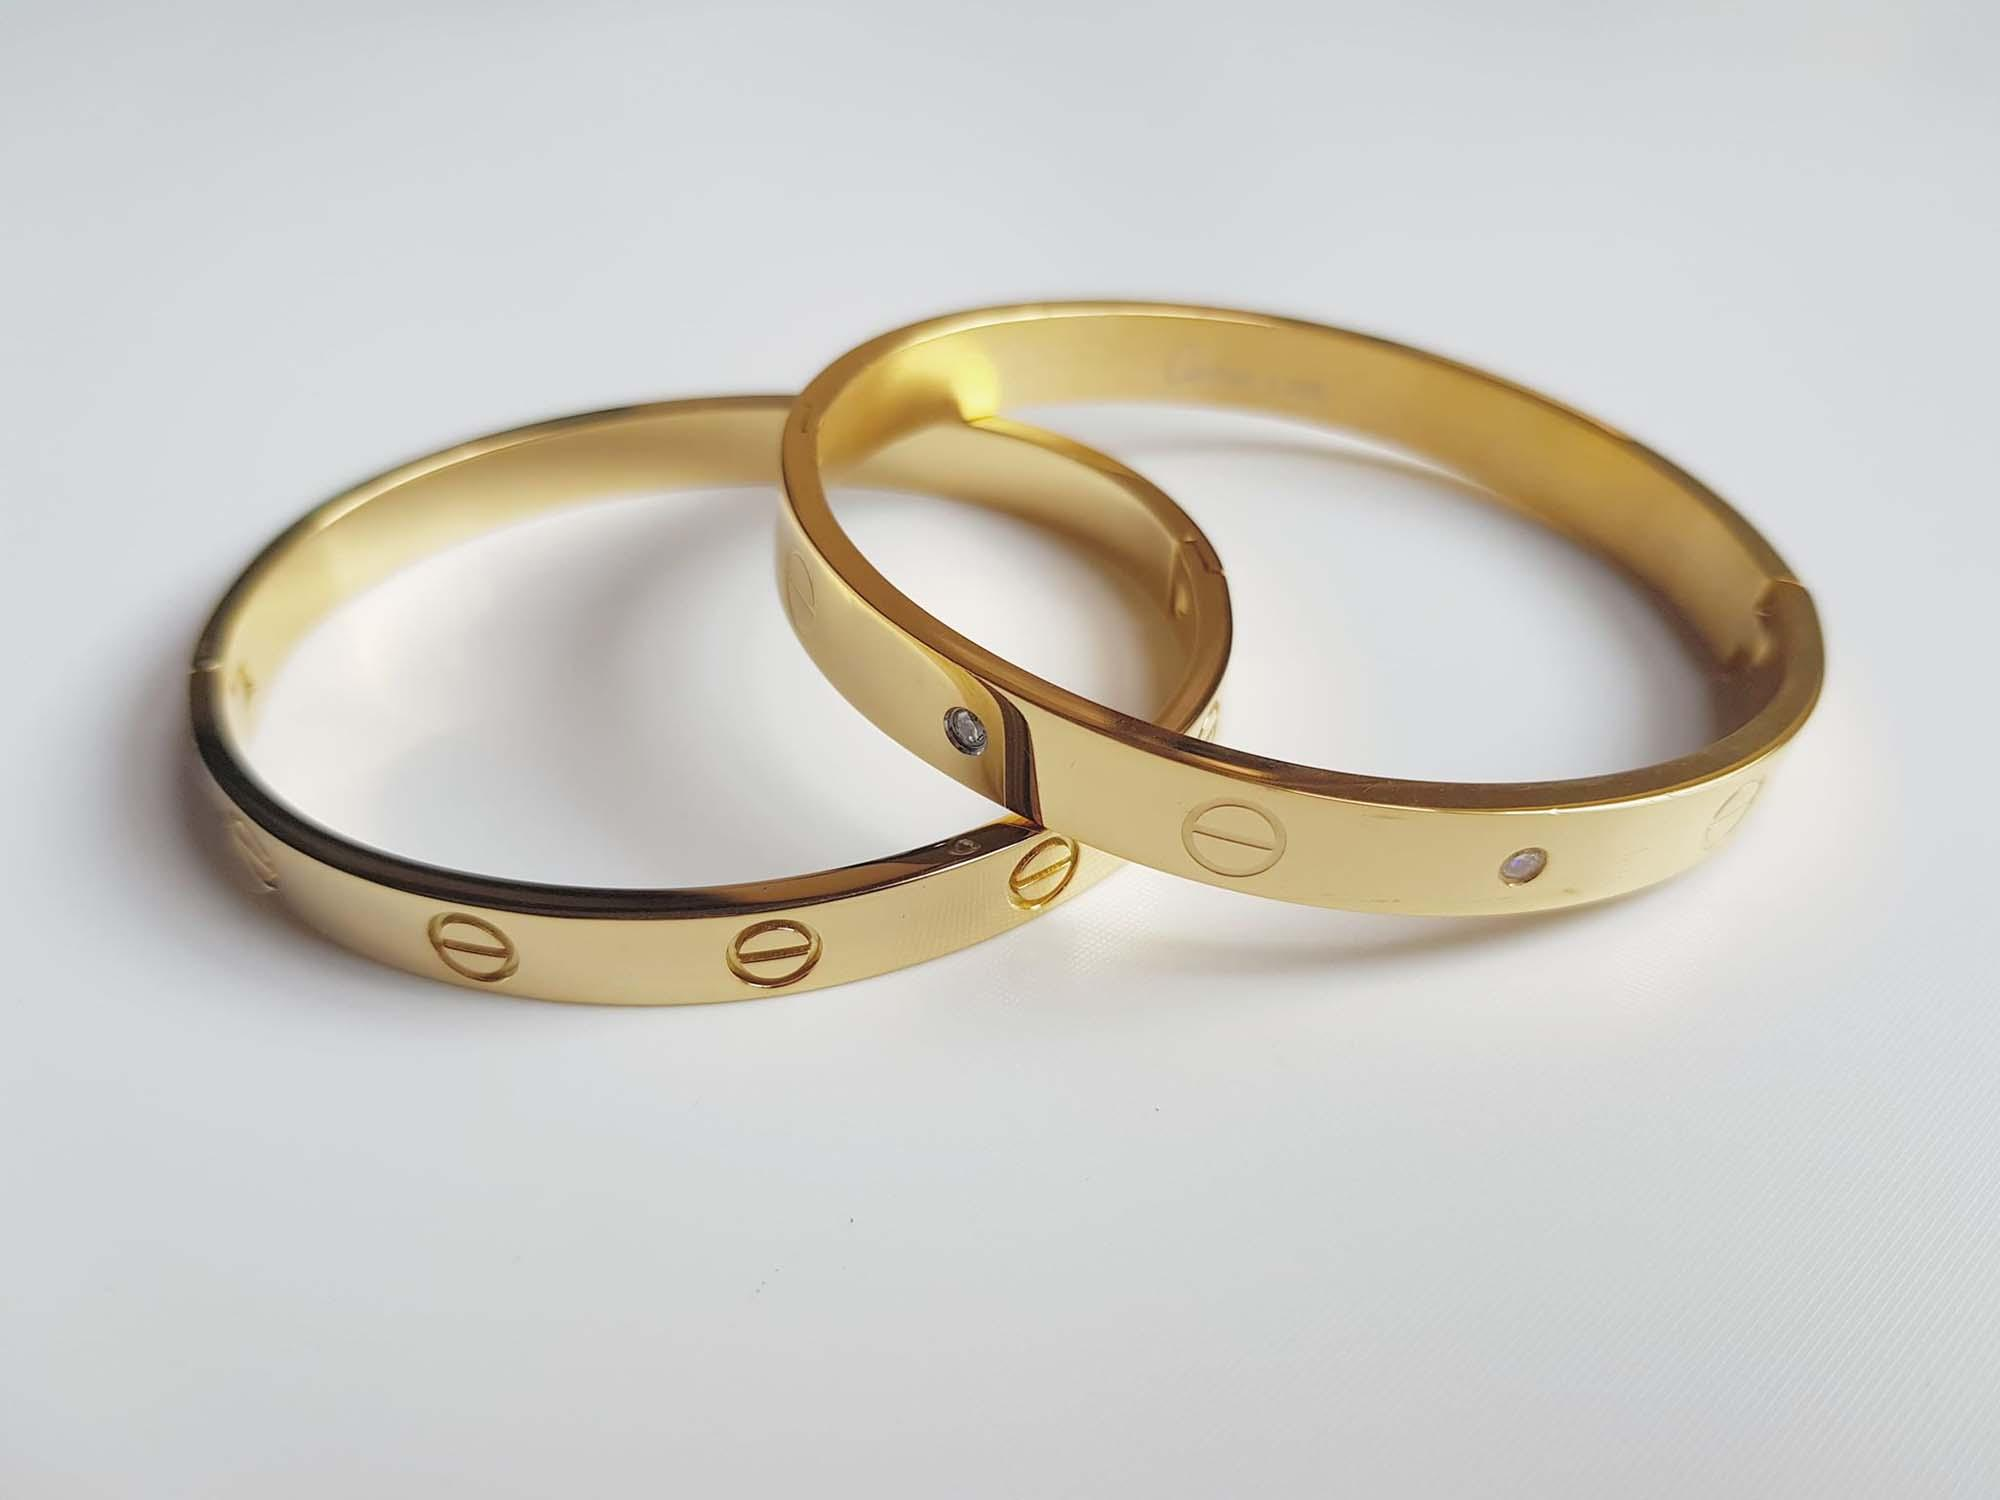 Cartier Inspired Gold Bangles